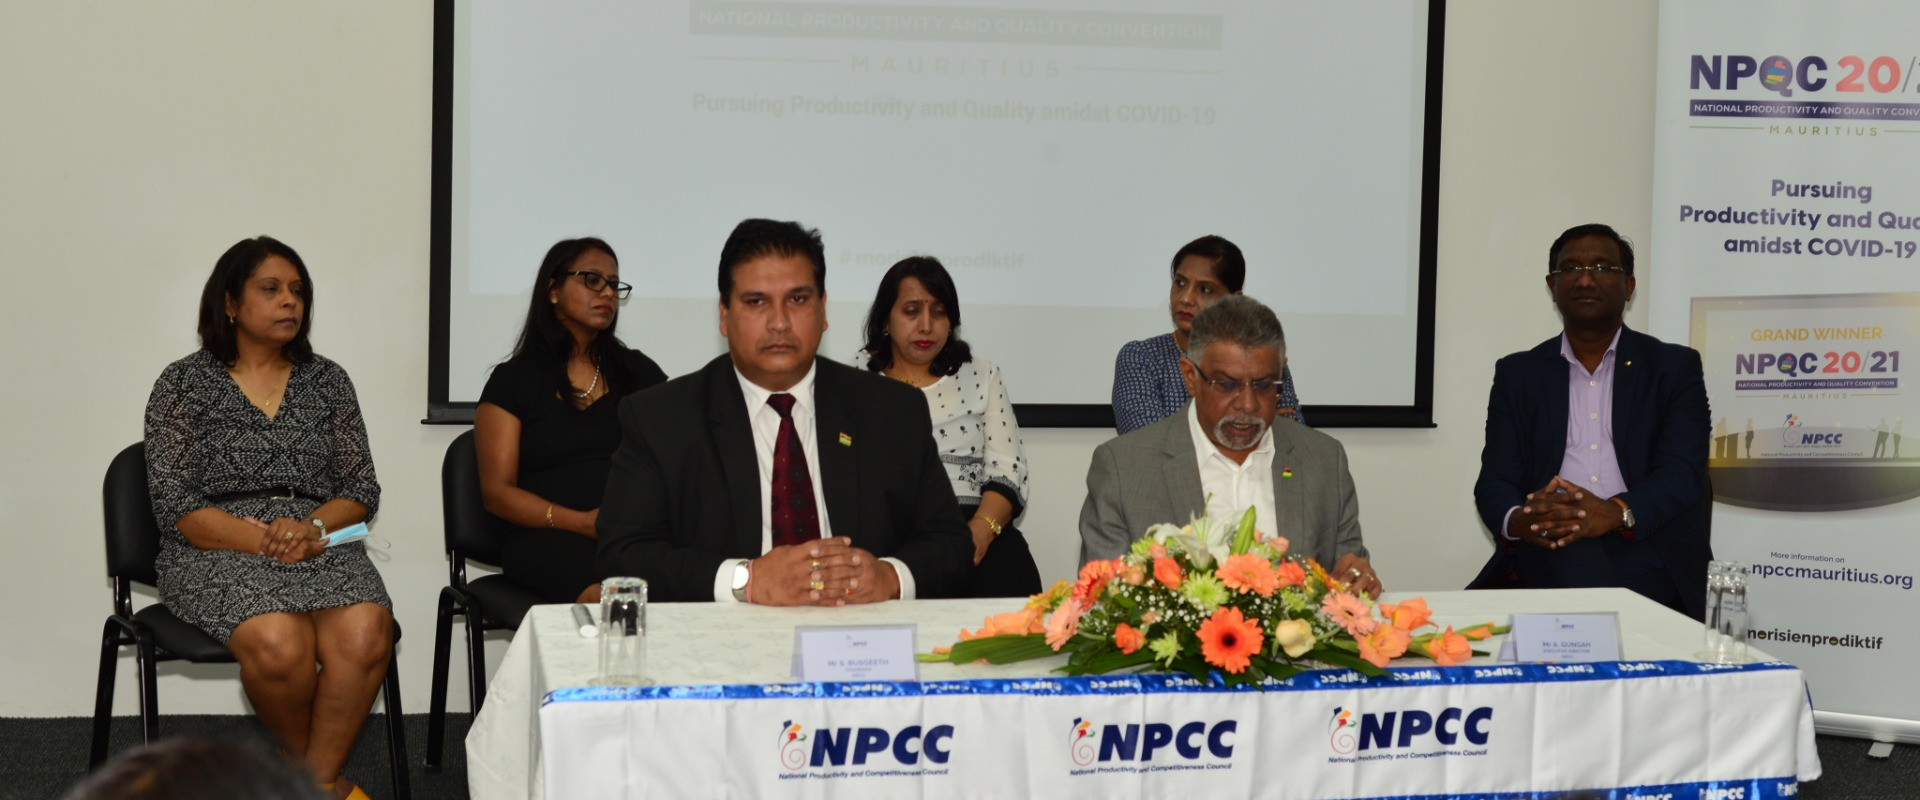 NPCC launches third edition of National Productivity and Quality Convention (NPQC)